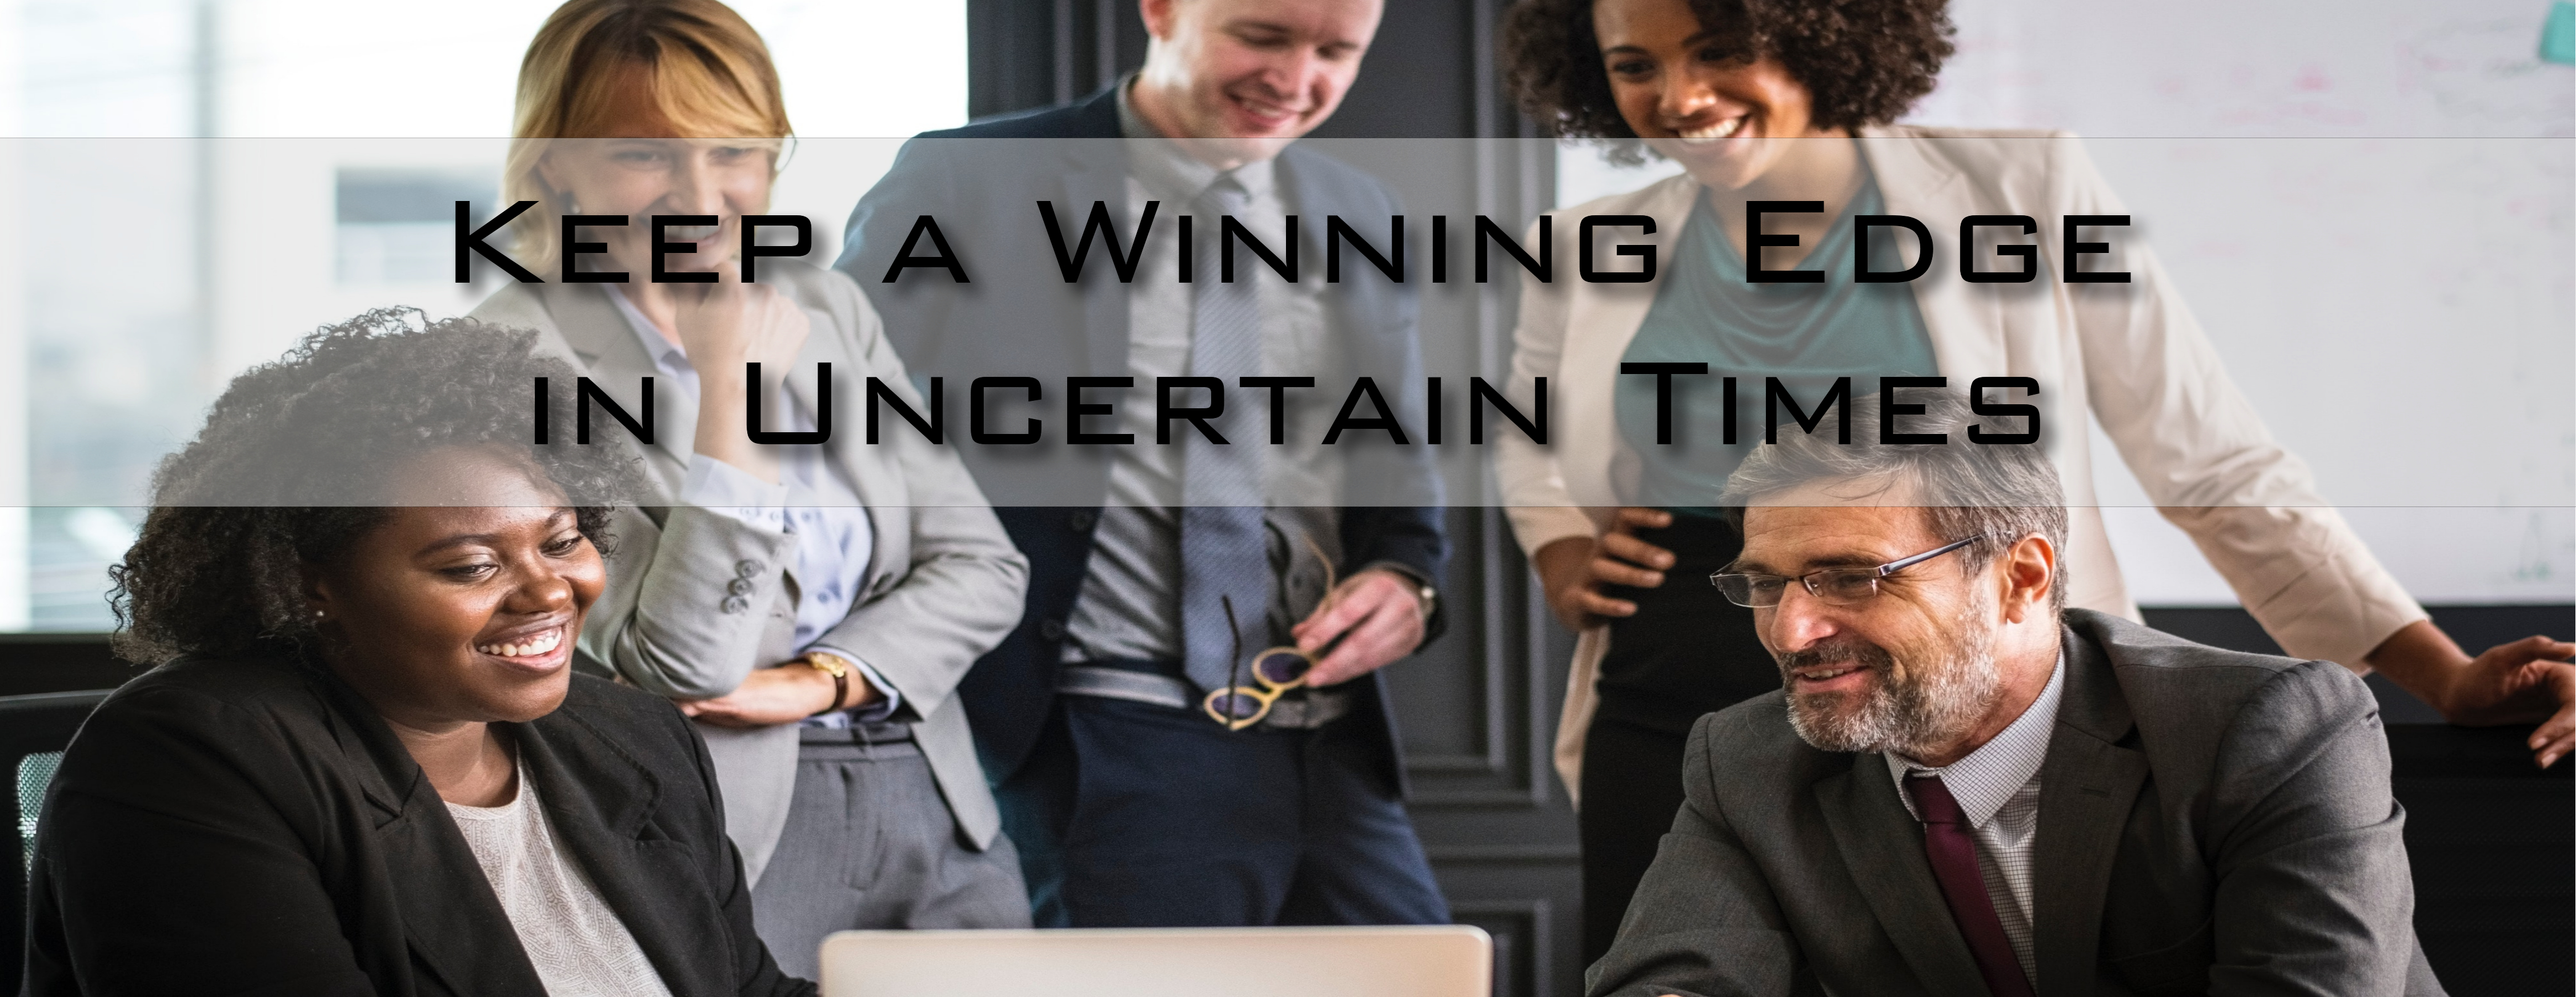 Keep a Winning Edge in Uncertain Times